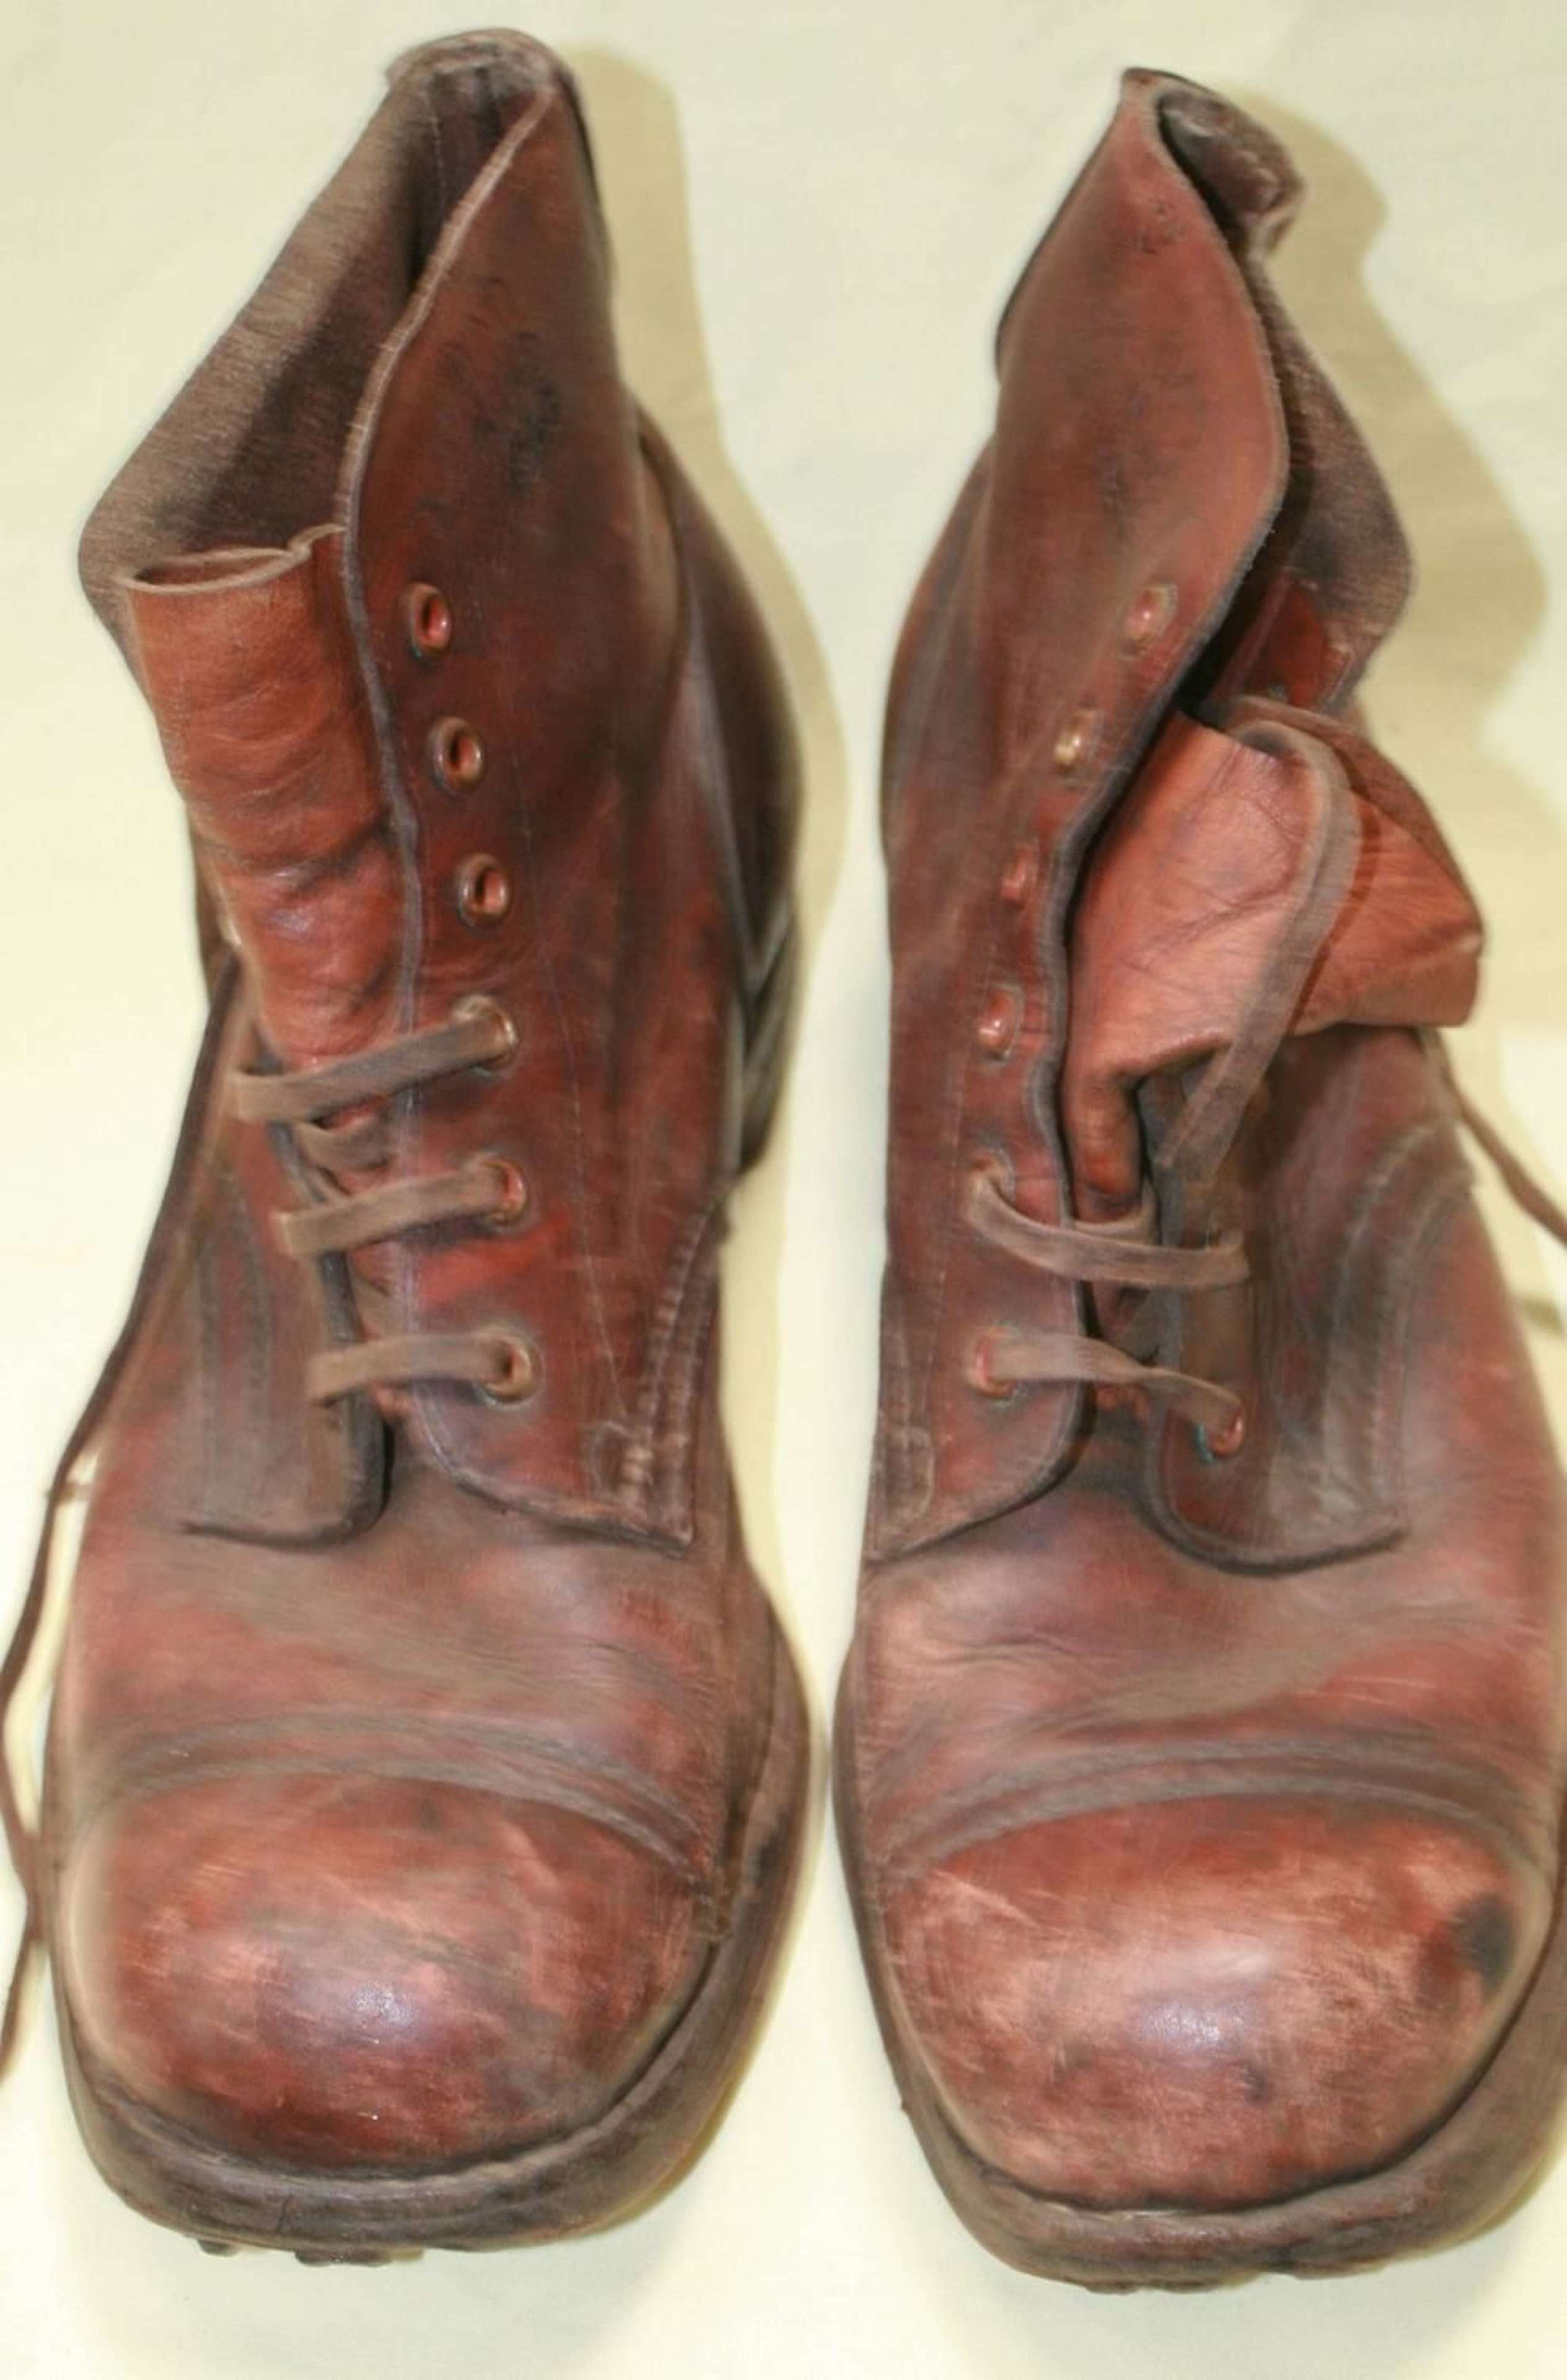 A PAIR OF AUSTRALIAN MADE 1945 DATED JUNGLE BOOTS WELL USED EXAMPLE